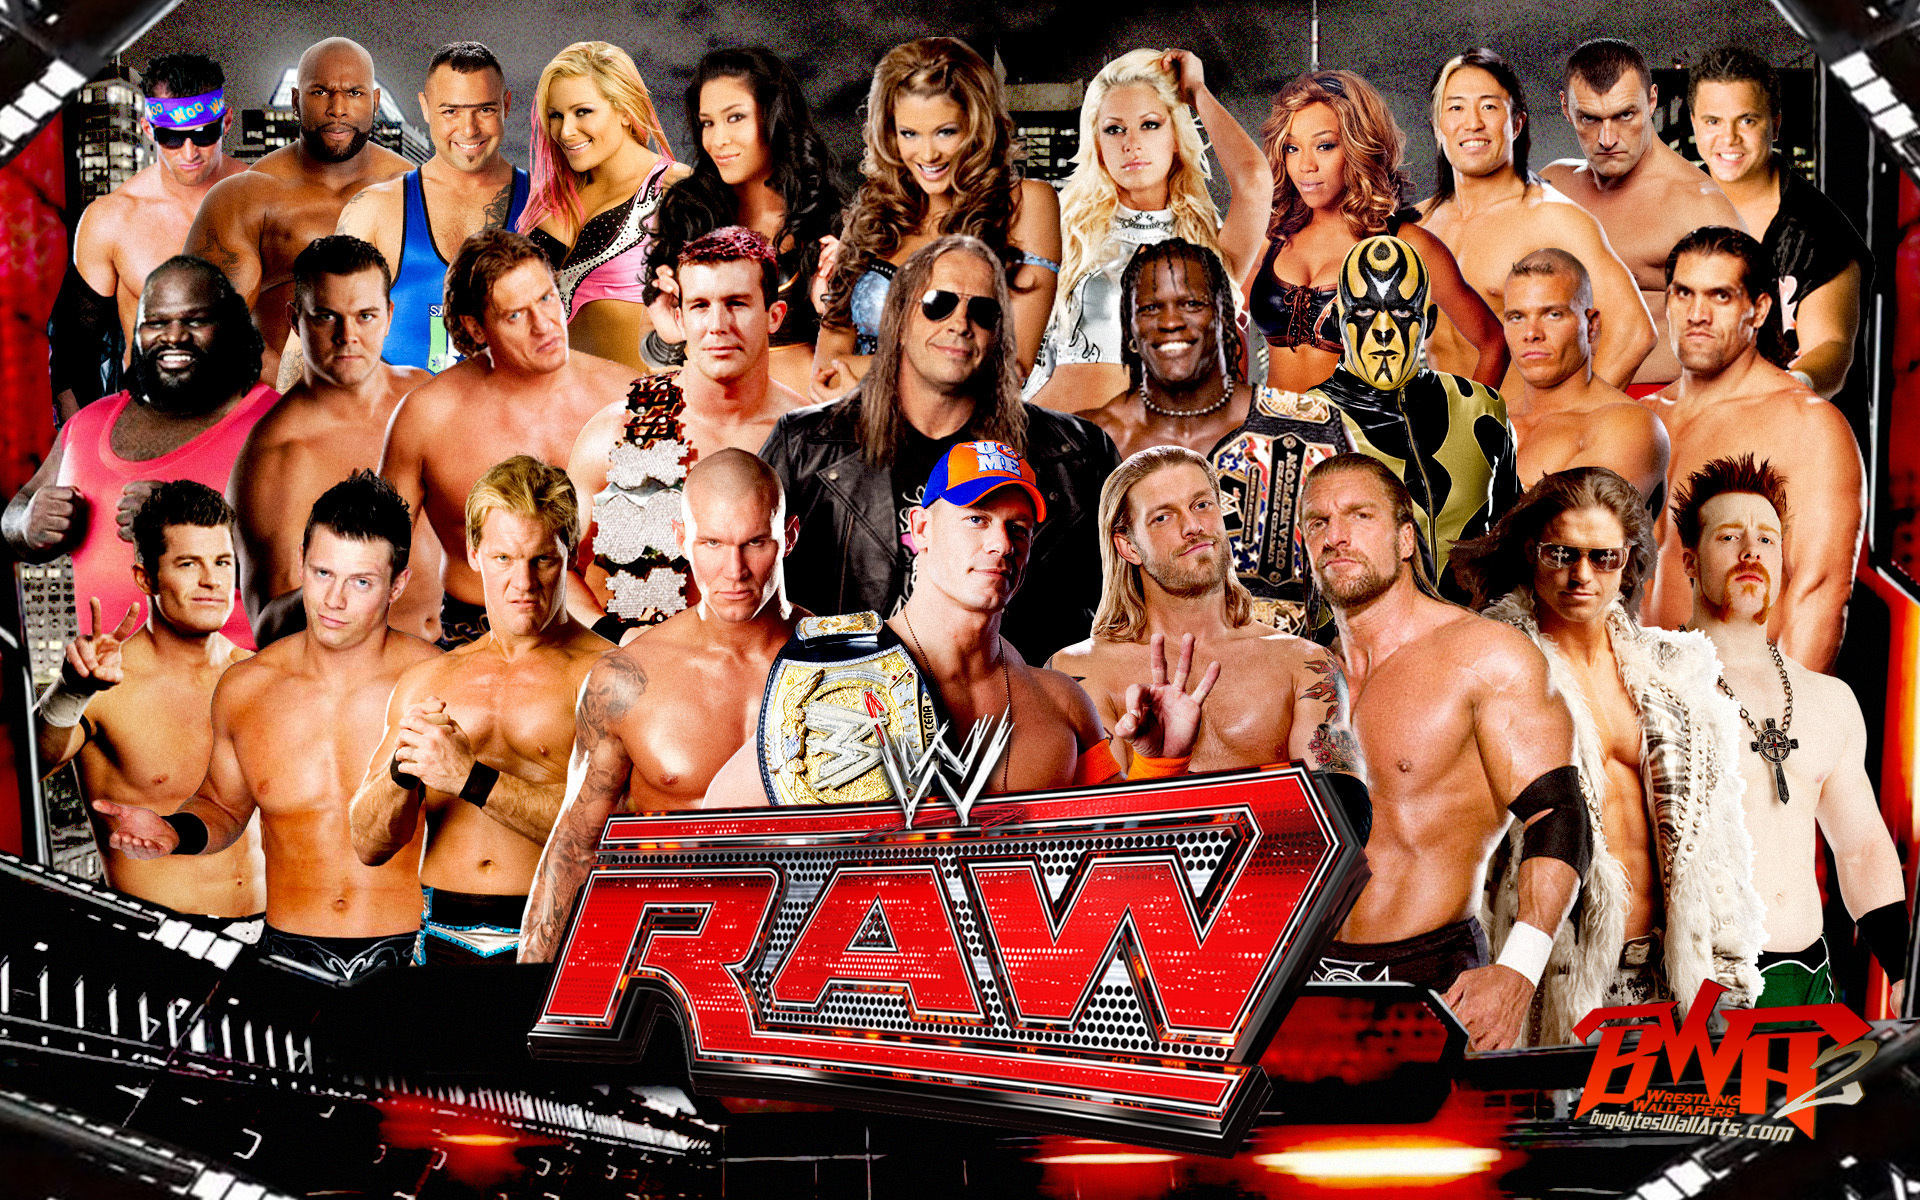 WWE Raw   WWE Wallpaper 16933714 1920x1200